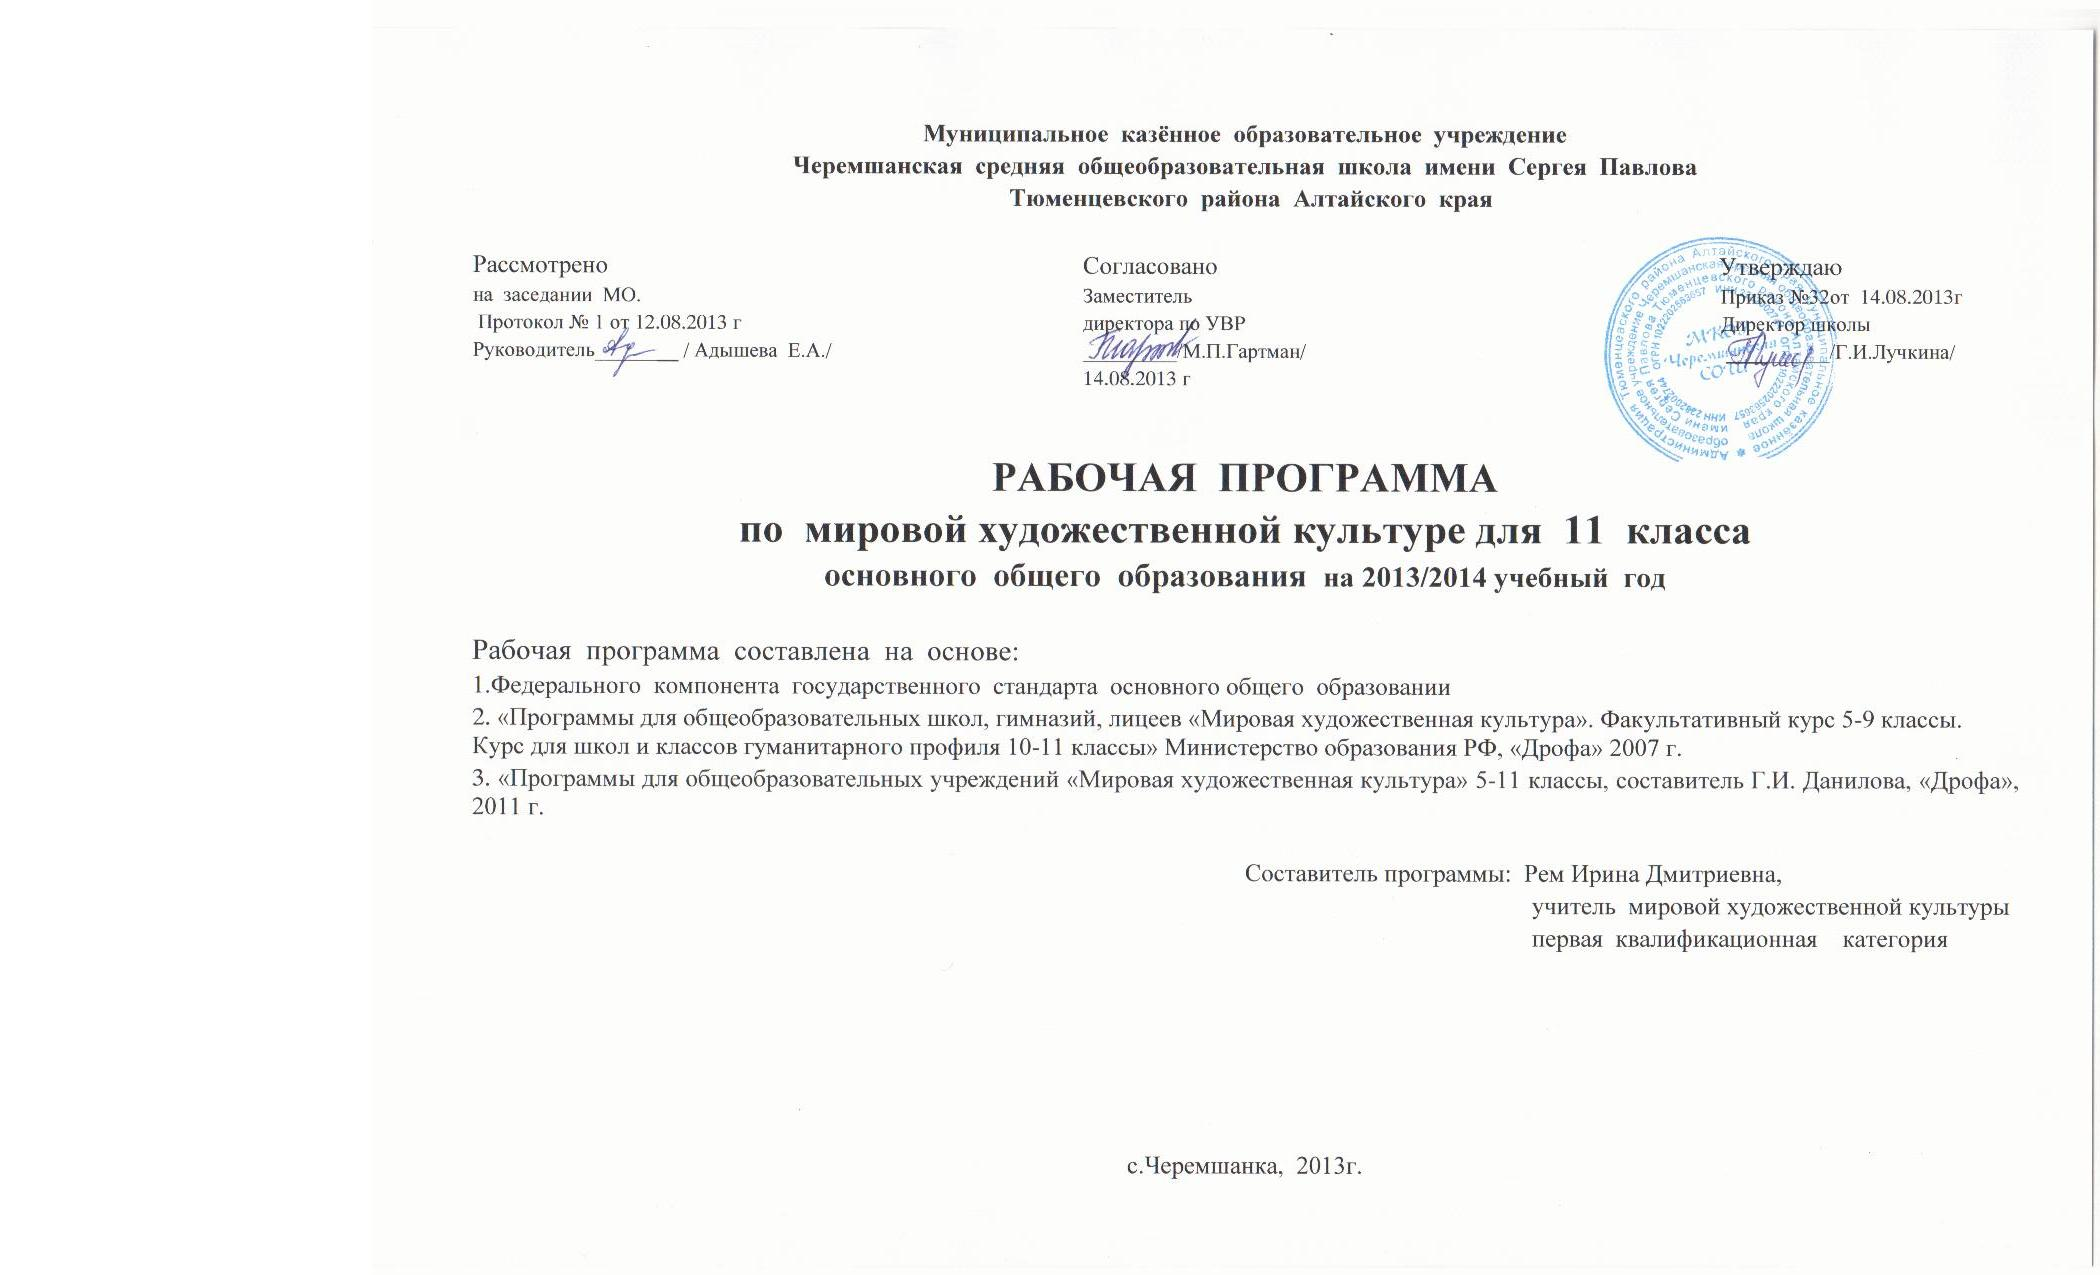 C:\Documents and Settings\User4\Local Settings\Temporary Internet Files\Content.Word\сканы история 8 014.jpg